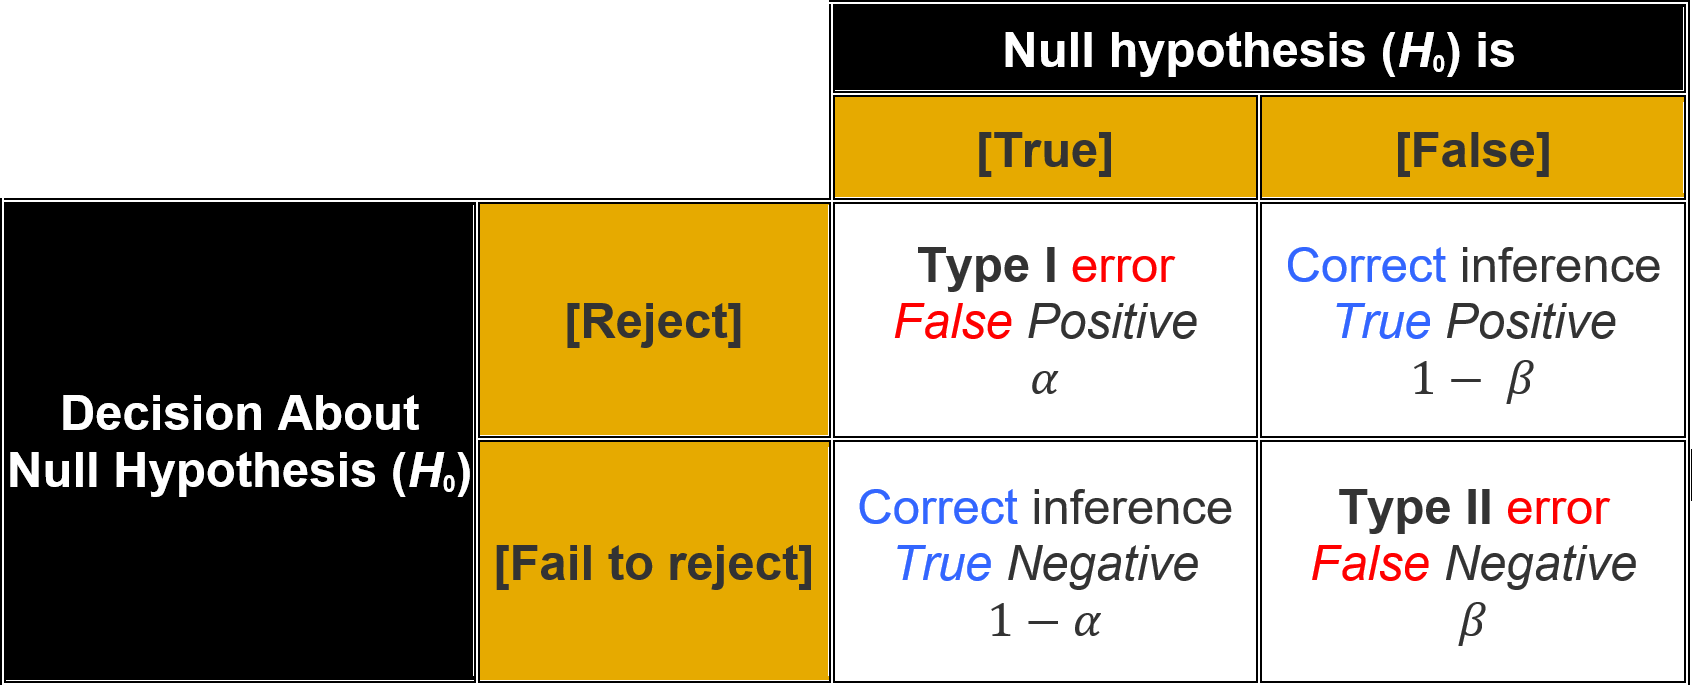 Null Hypothesis Significance Testing outcomes [or Table of error types]